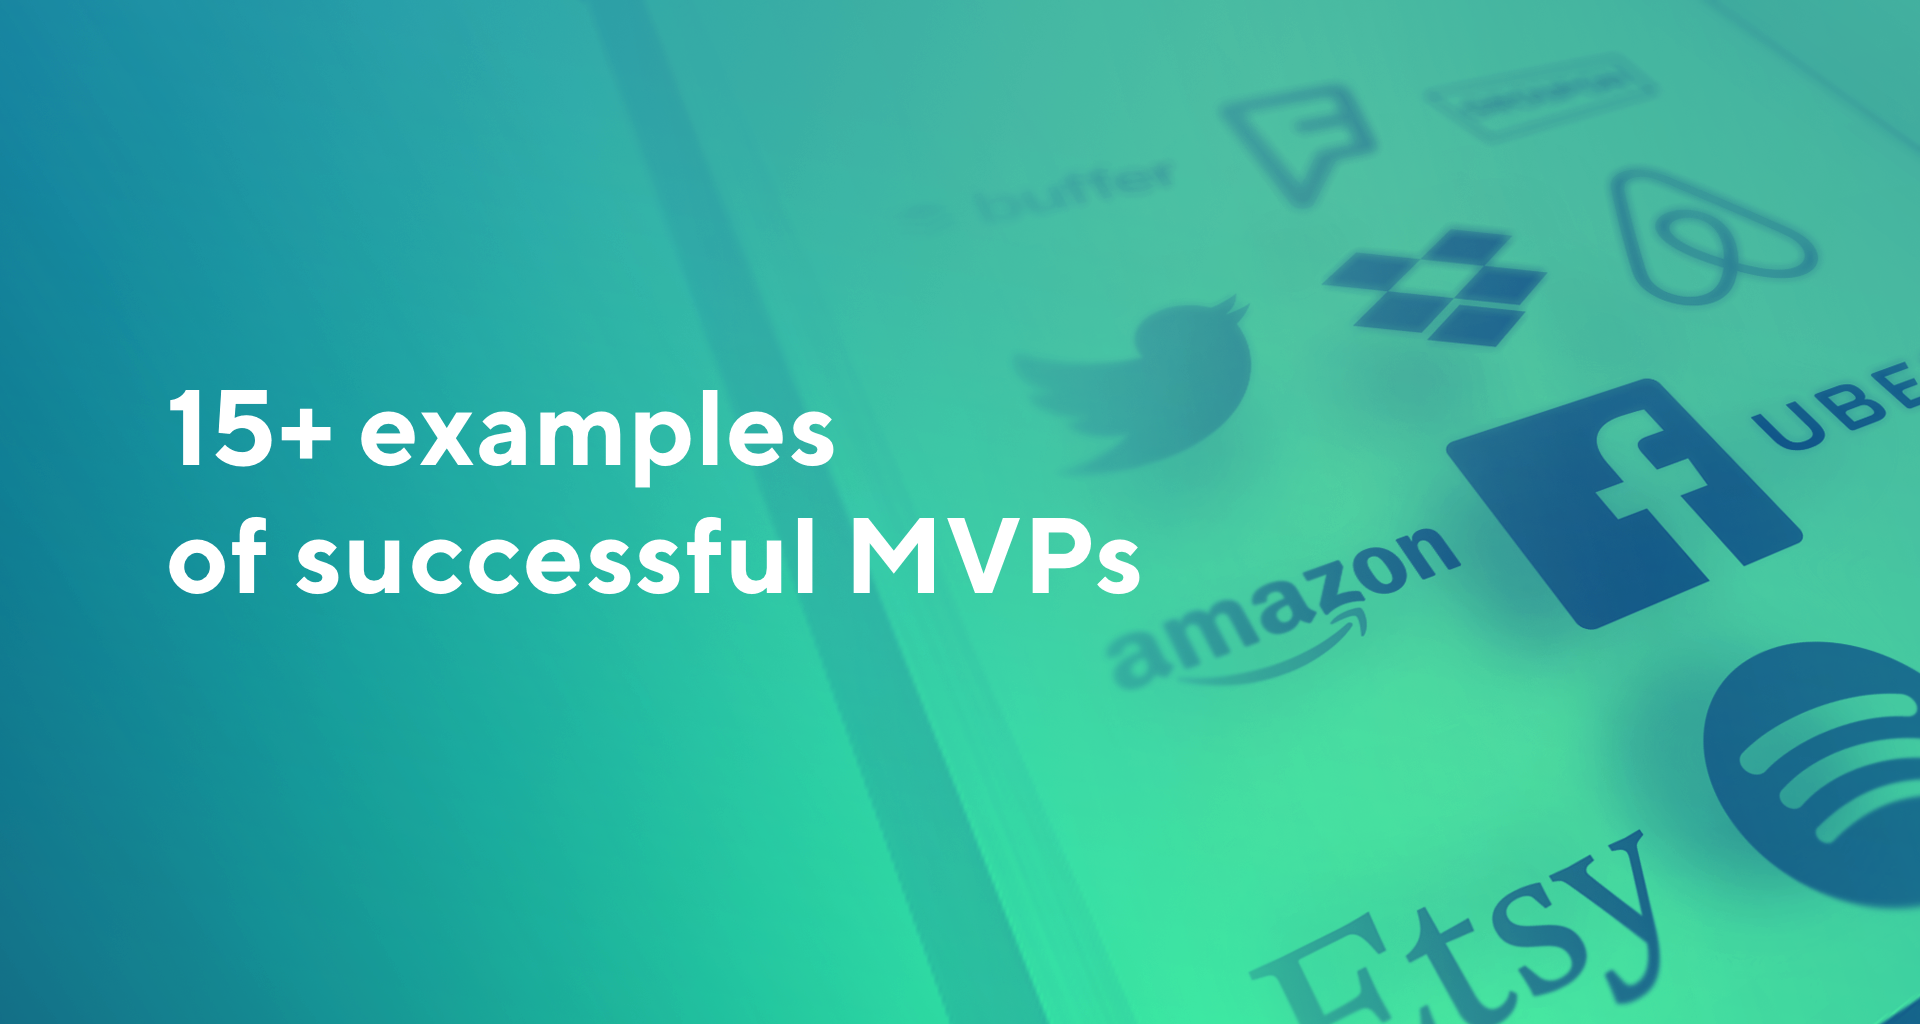 15+ Examples of successful MVPs